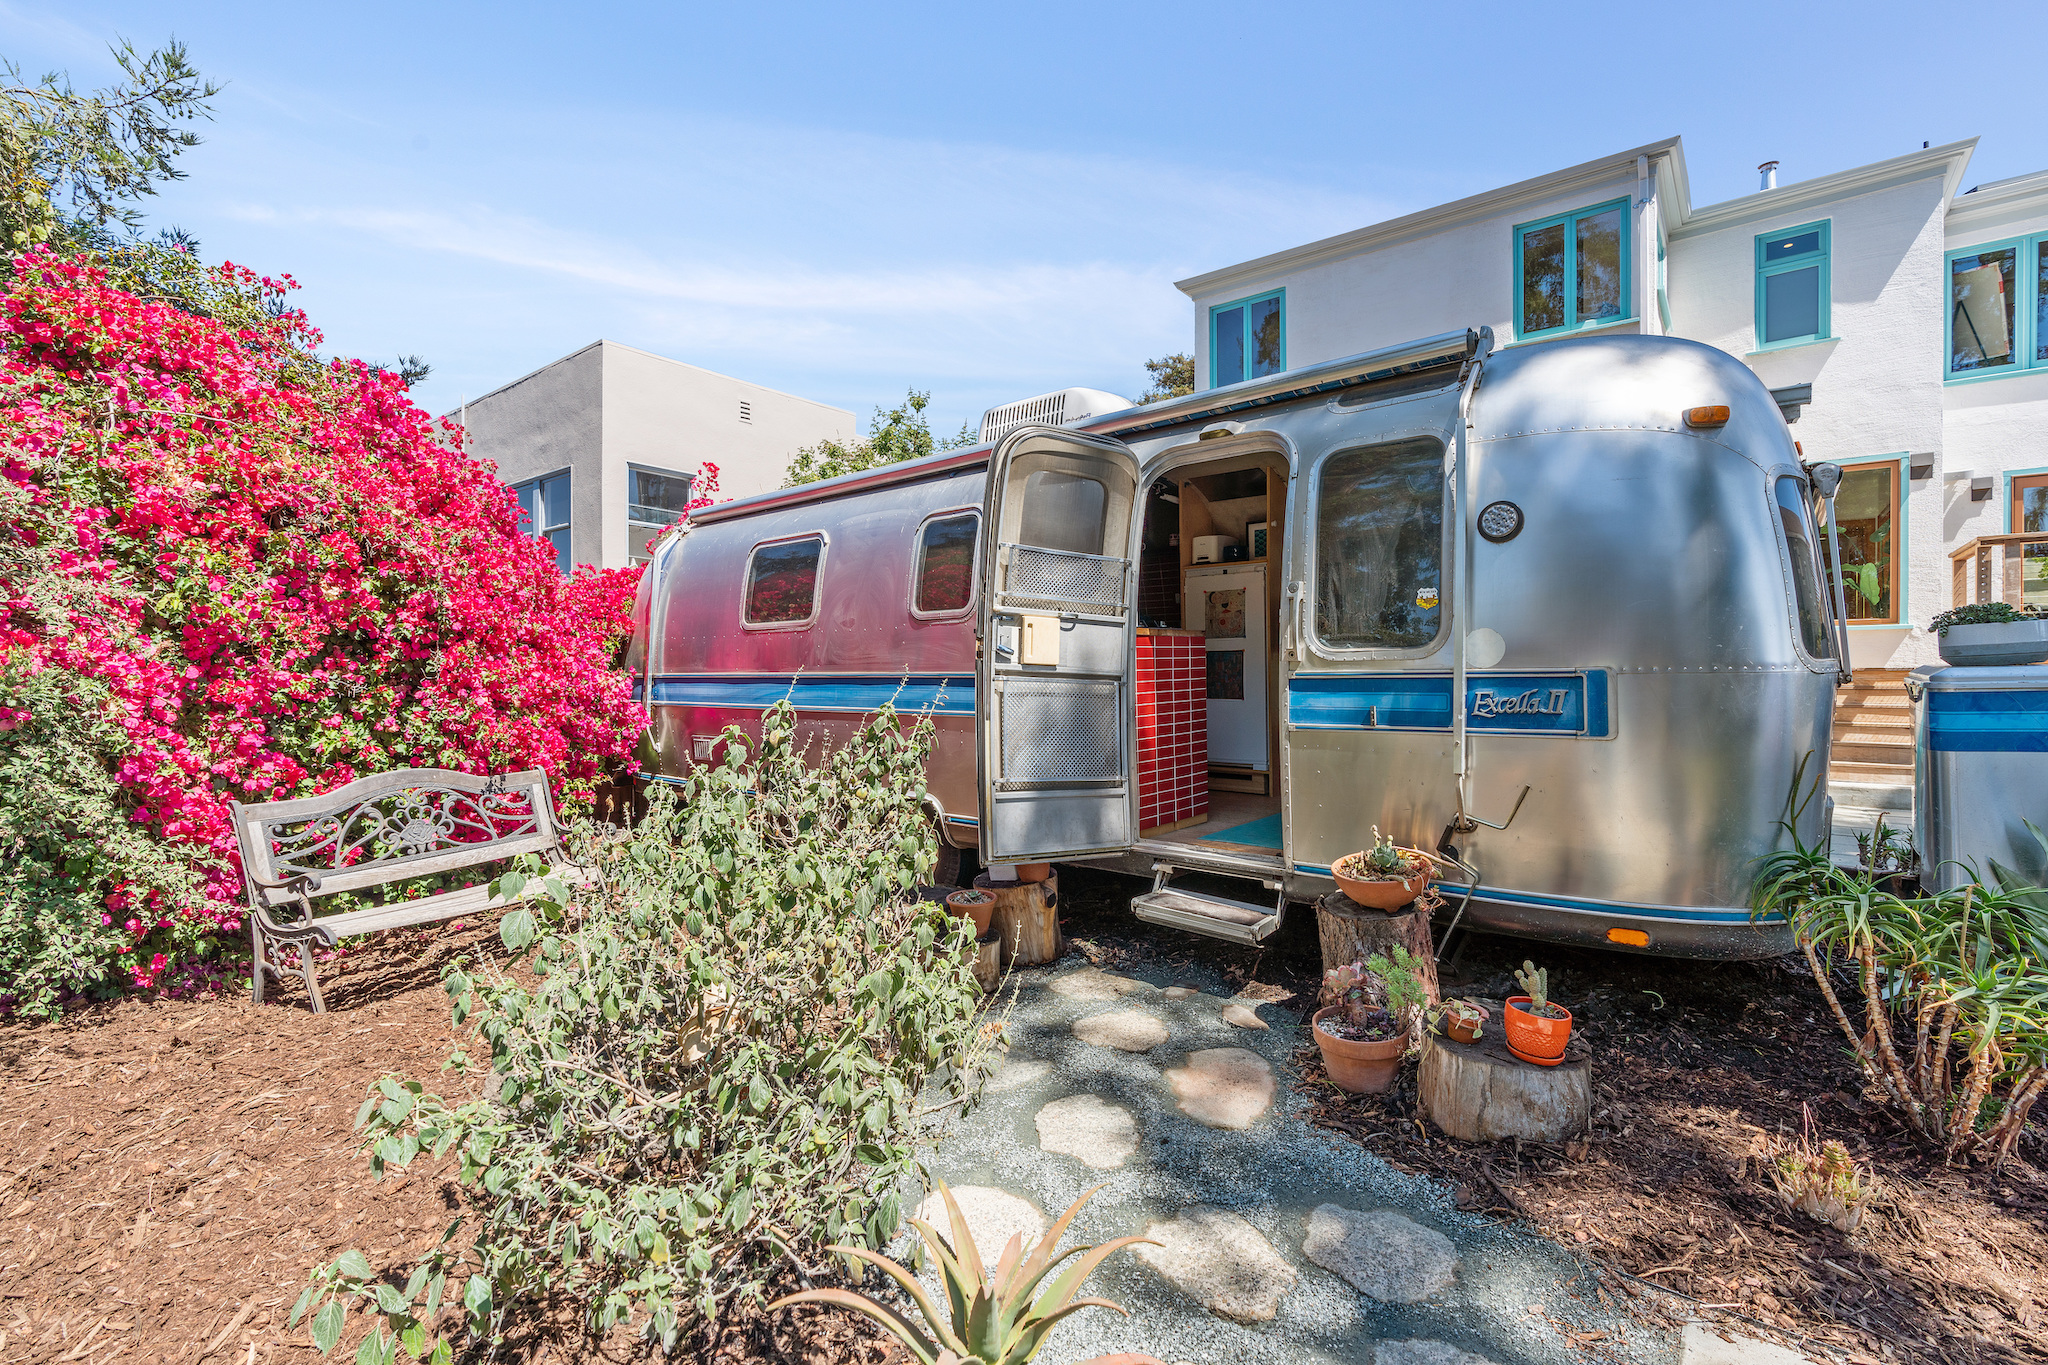 A fully equipped one-bedroom Airstream completes the scene.